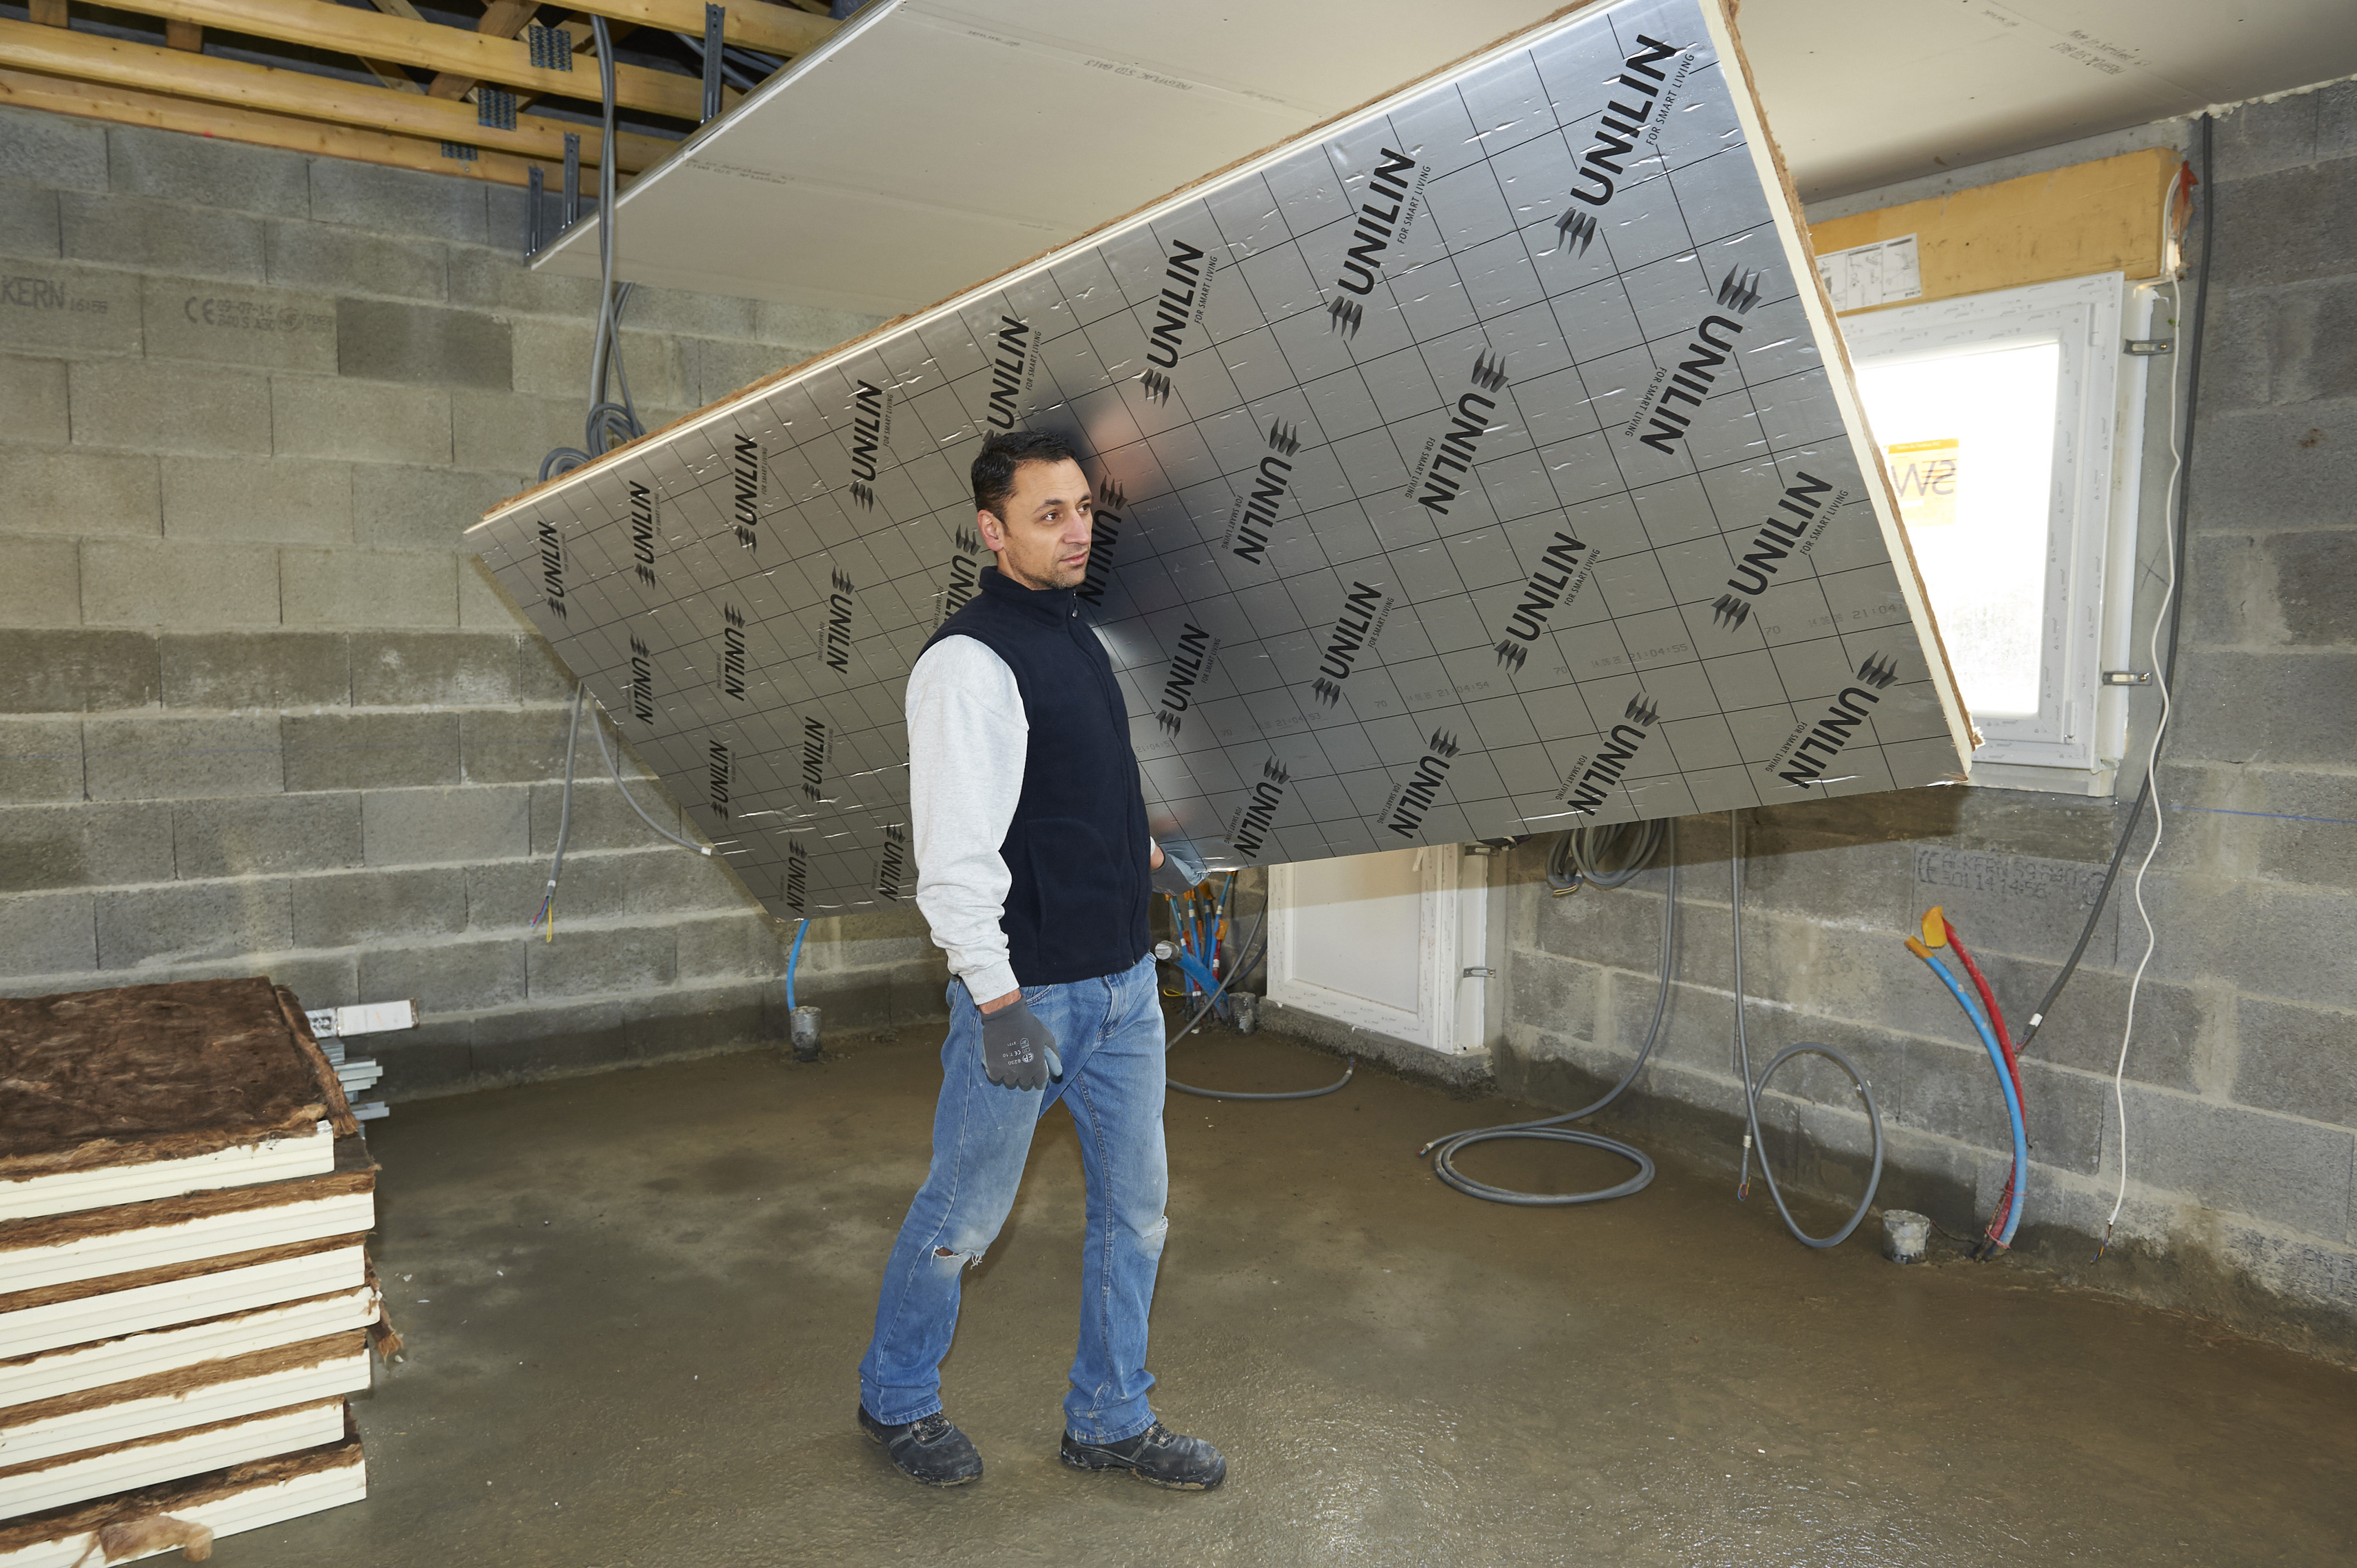 http://authoring.unilininsulation.emea.int.grp/Assets/FOTO%20SITE%20FRANKRIJK/isocombo%20wall%20homepage%20highlight.jpg